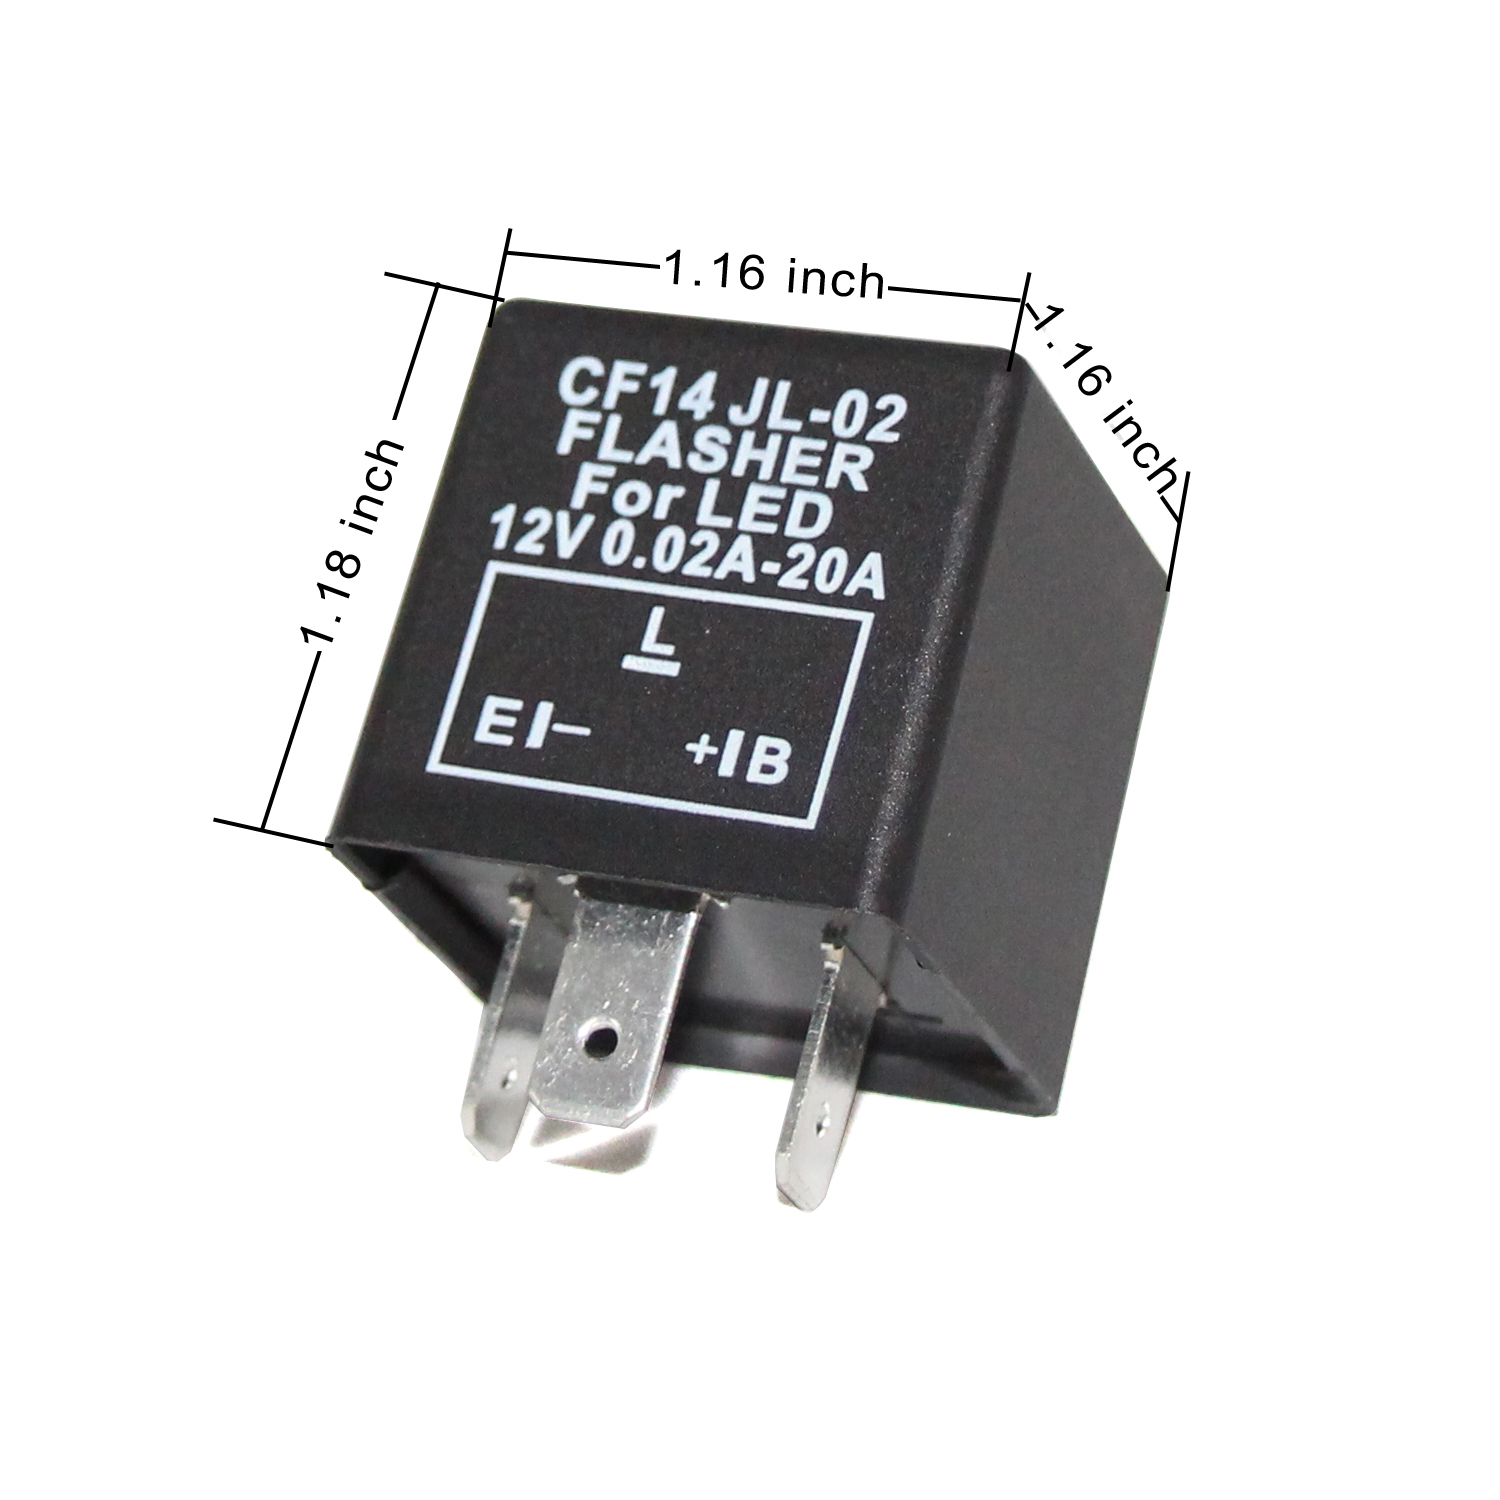 Automotive CF14 LED Flasher Relay Replacement for Cars, Trucks